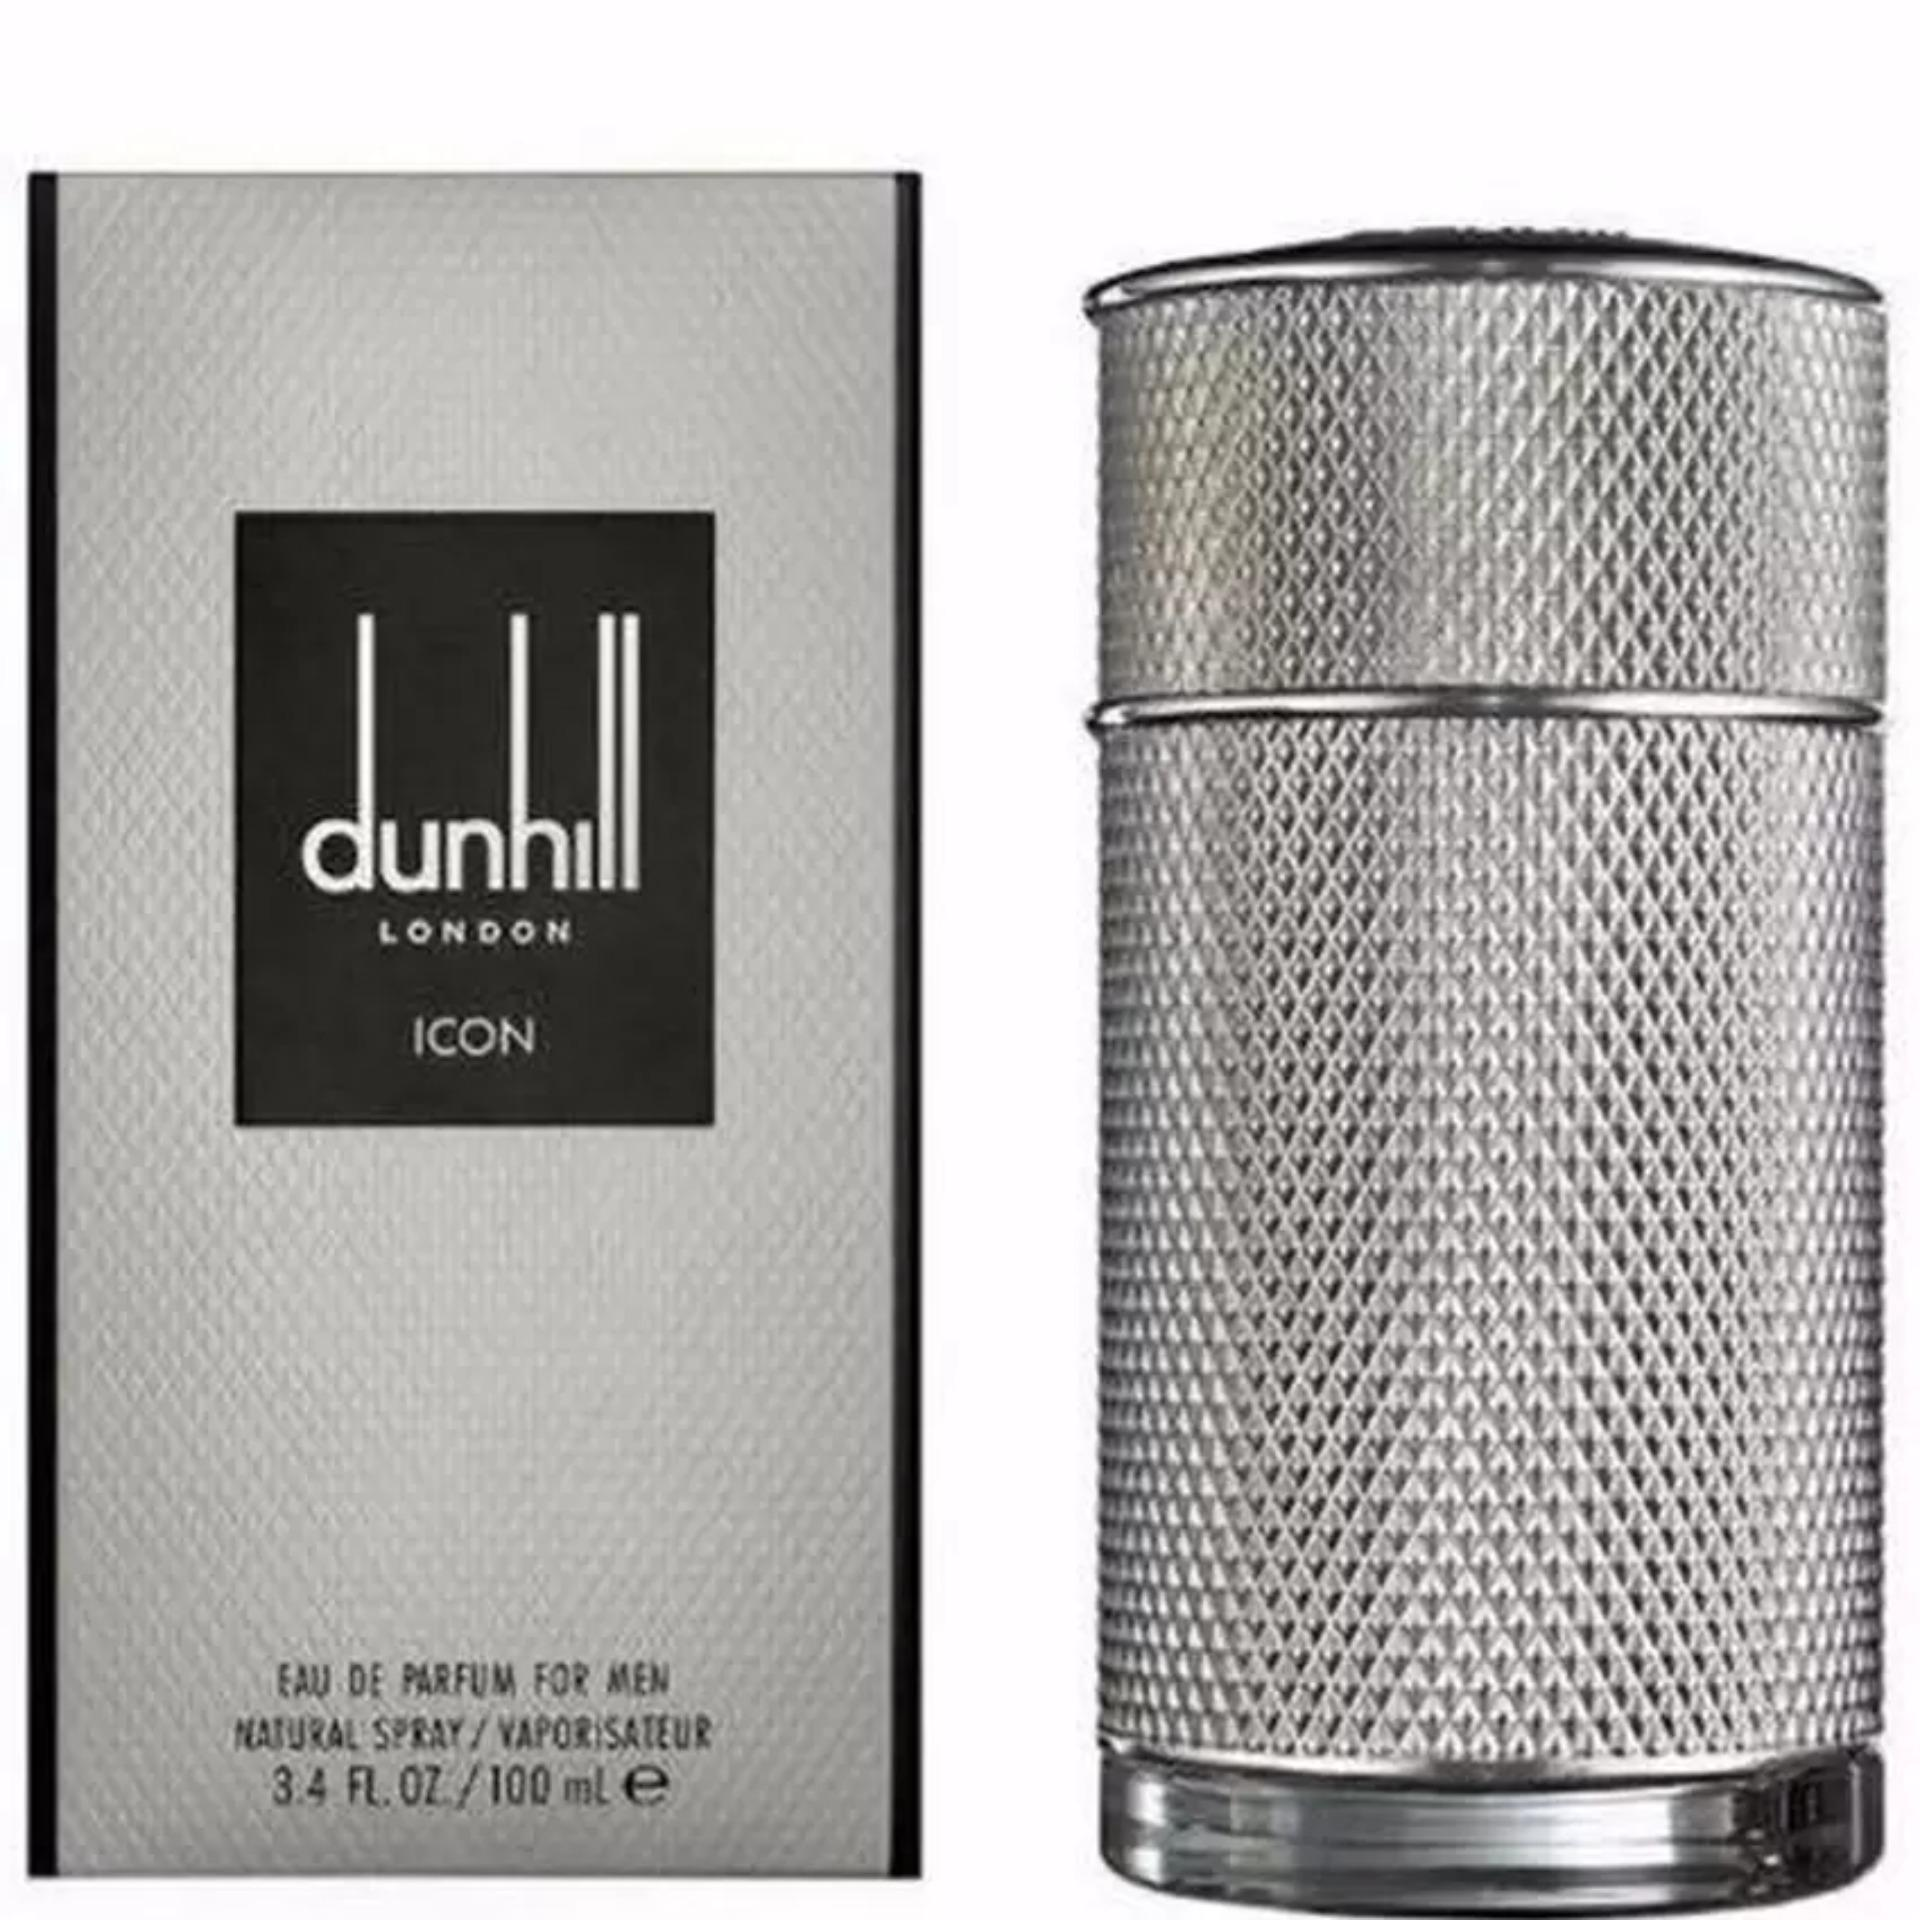 Dunhill London Icon Eau De Parfum Perfume for Men 100ml product preview, discount at cheapest price